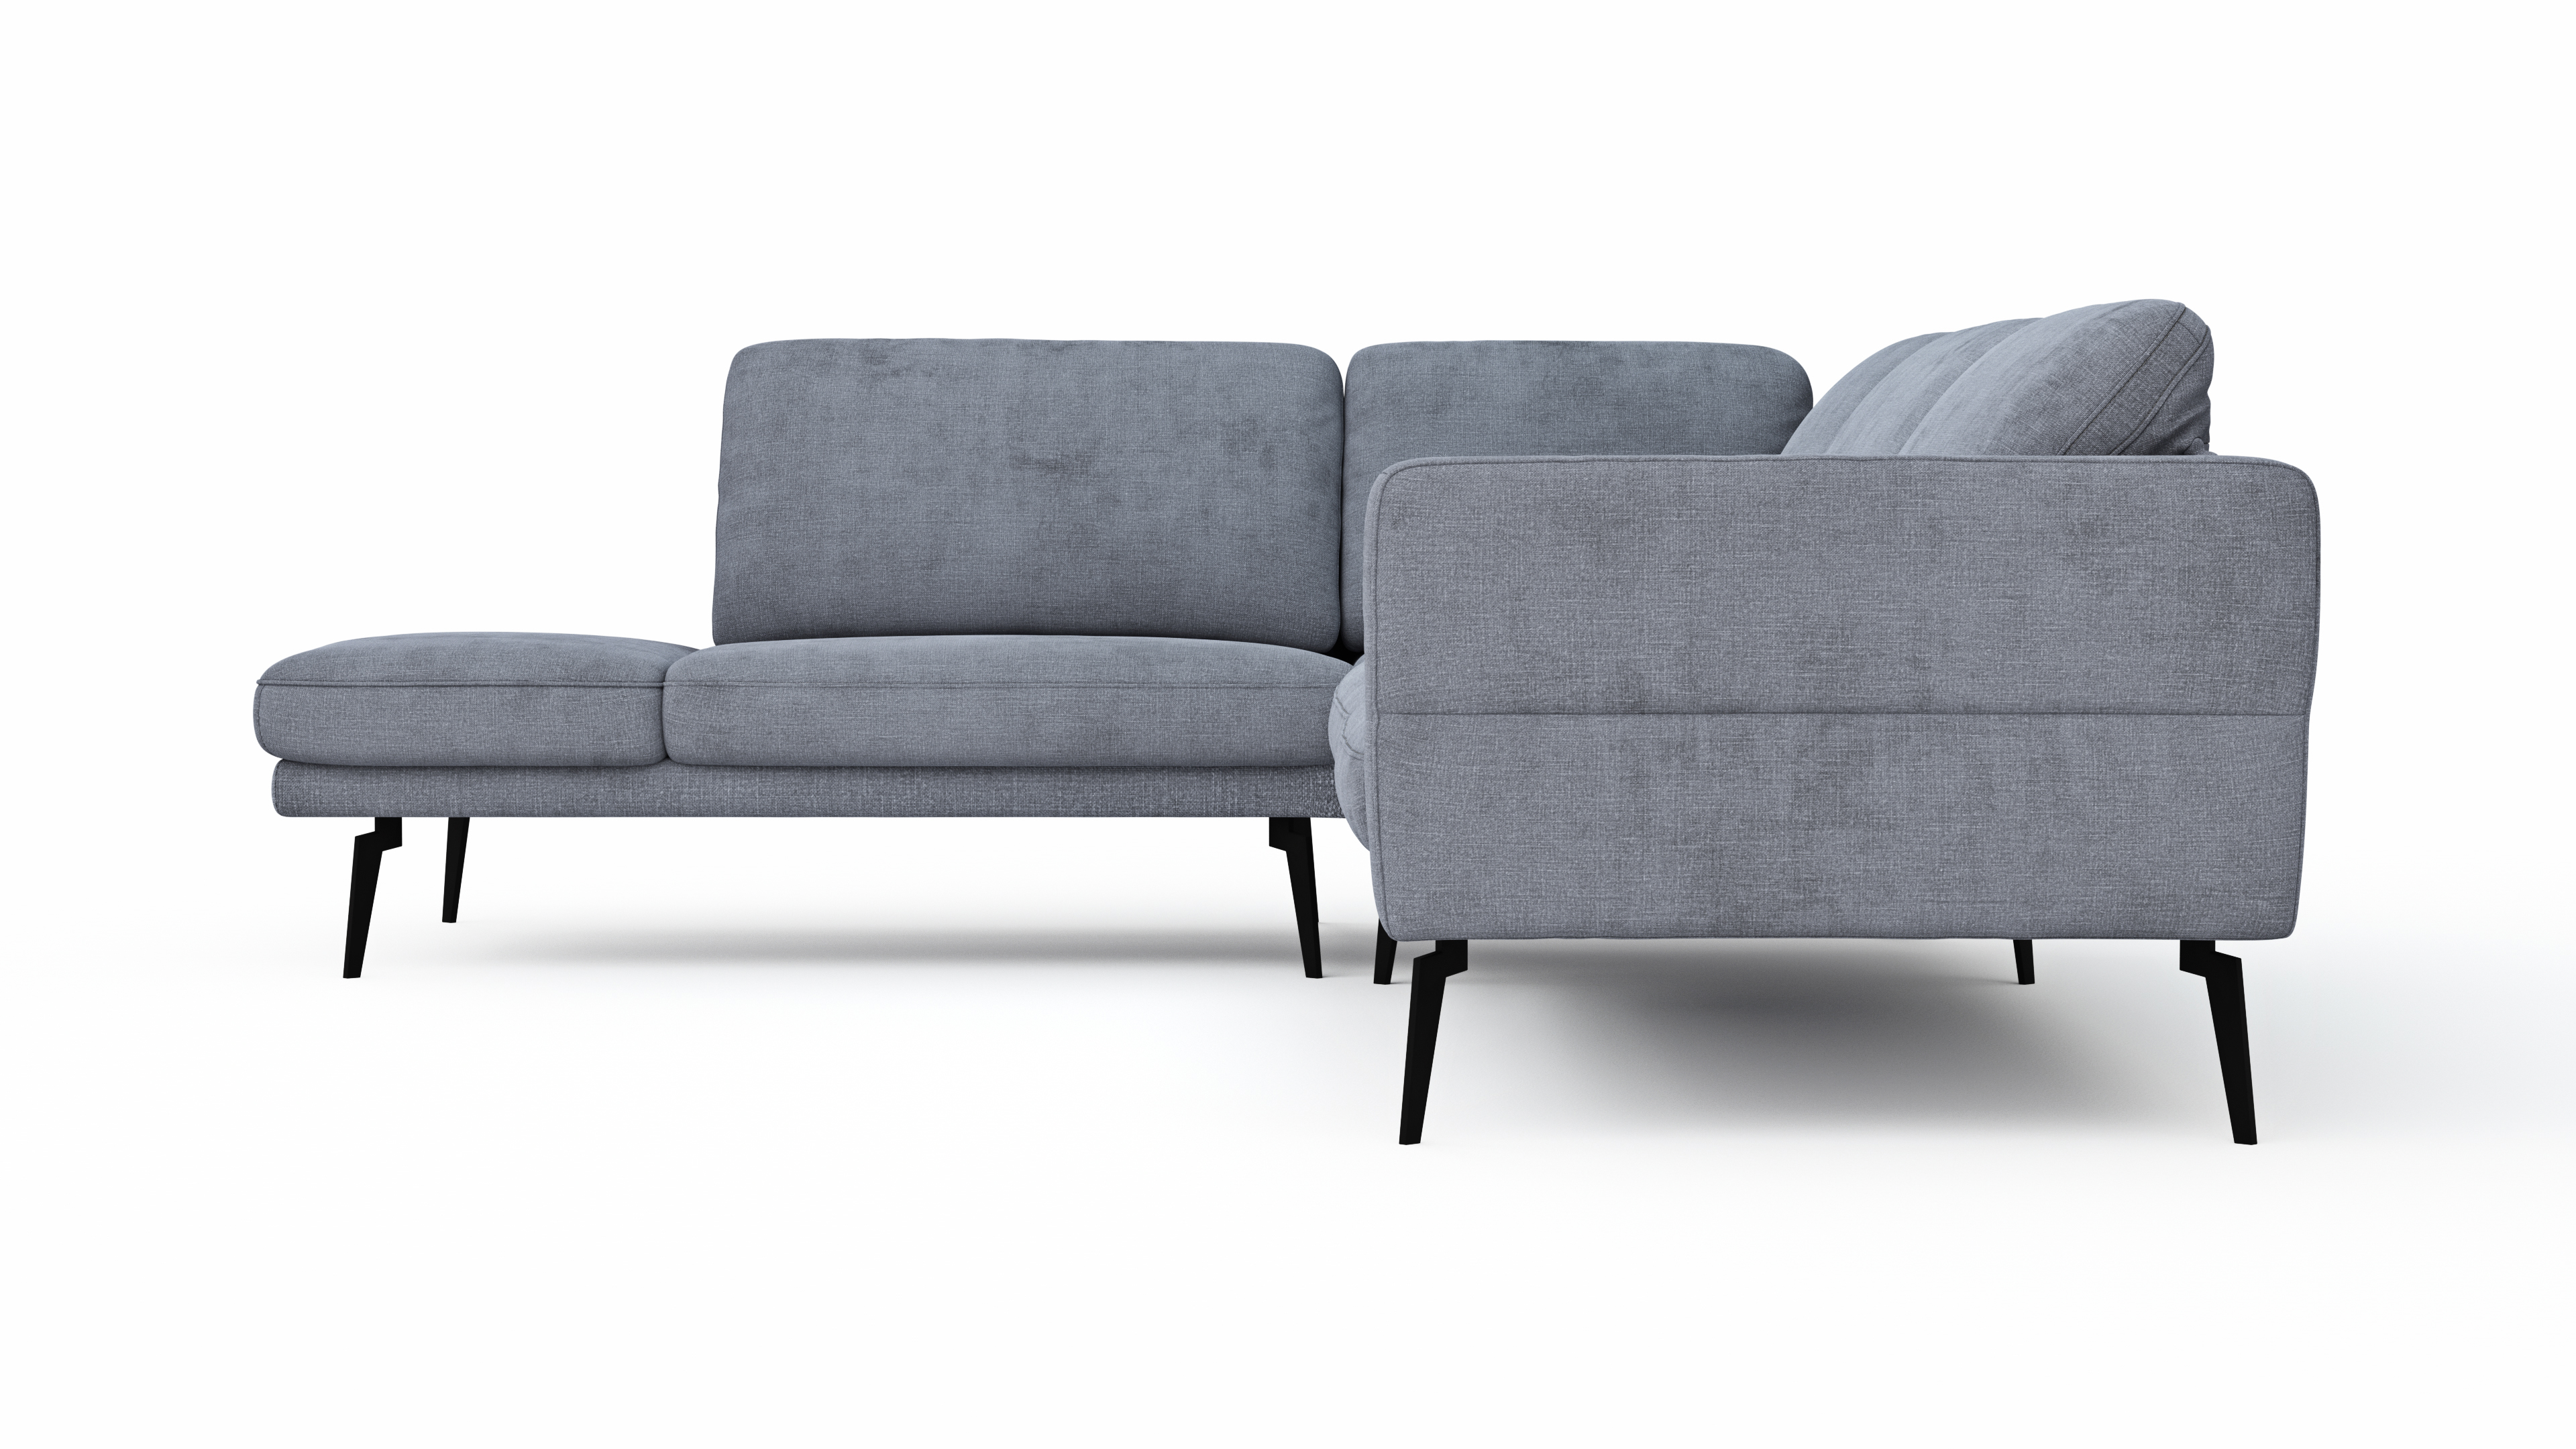 Global Select Ecksofa Estrela freisteller 1 104247 | Homepoet